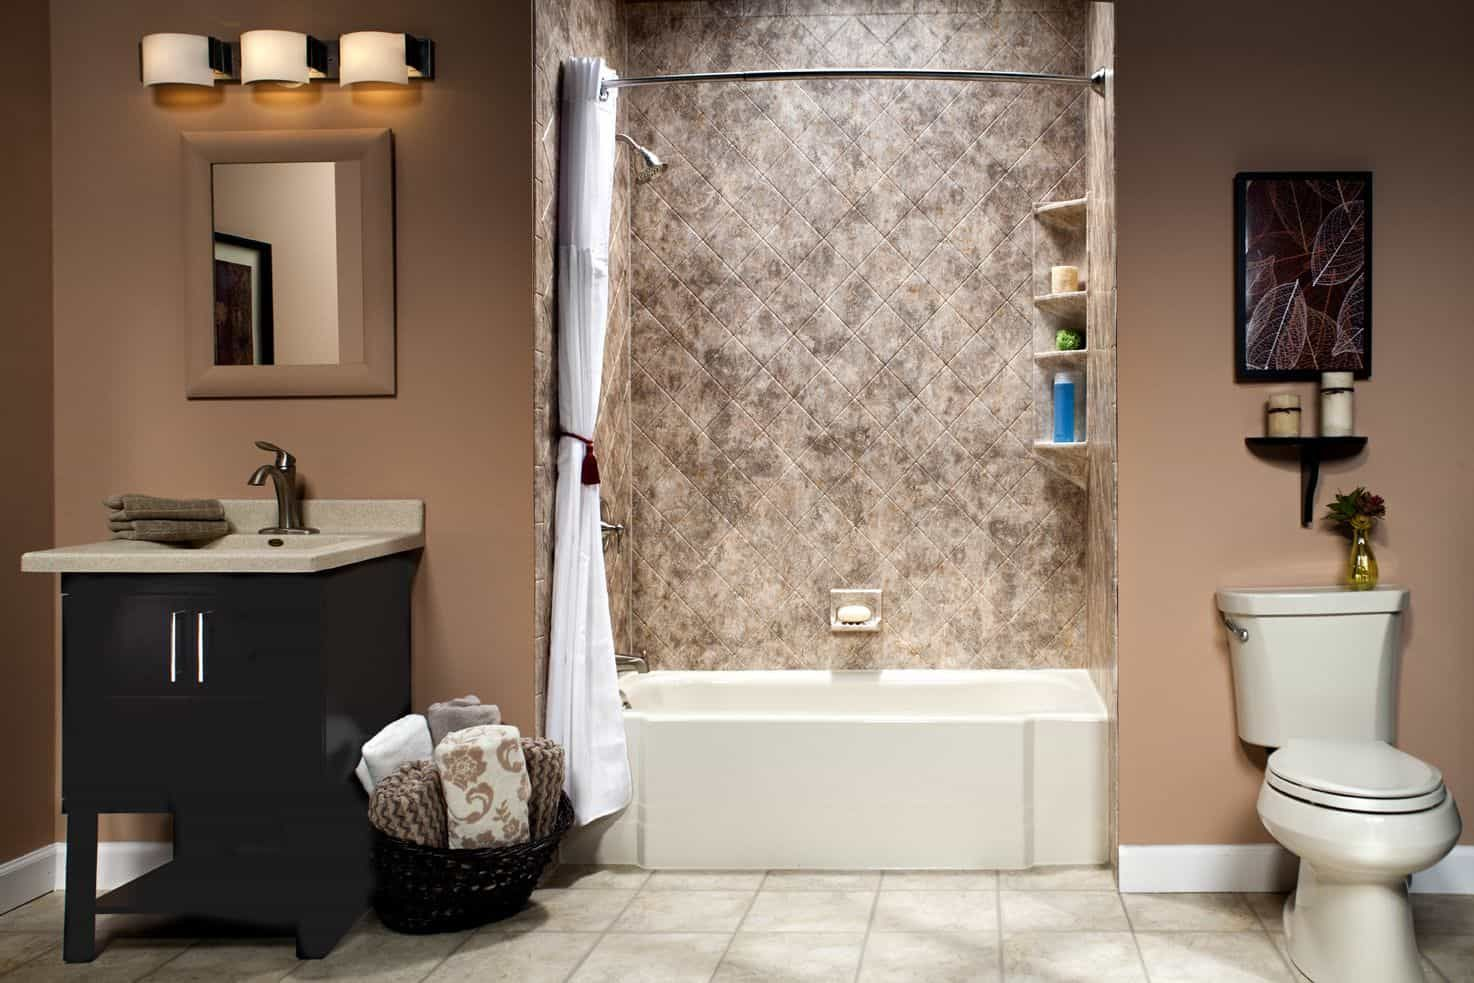 A Bathroom With Safety Hazards | Safety and Spaces